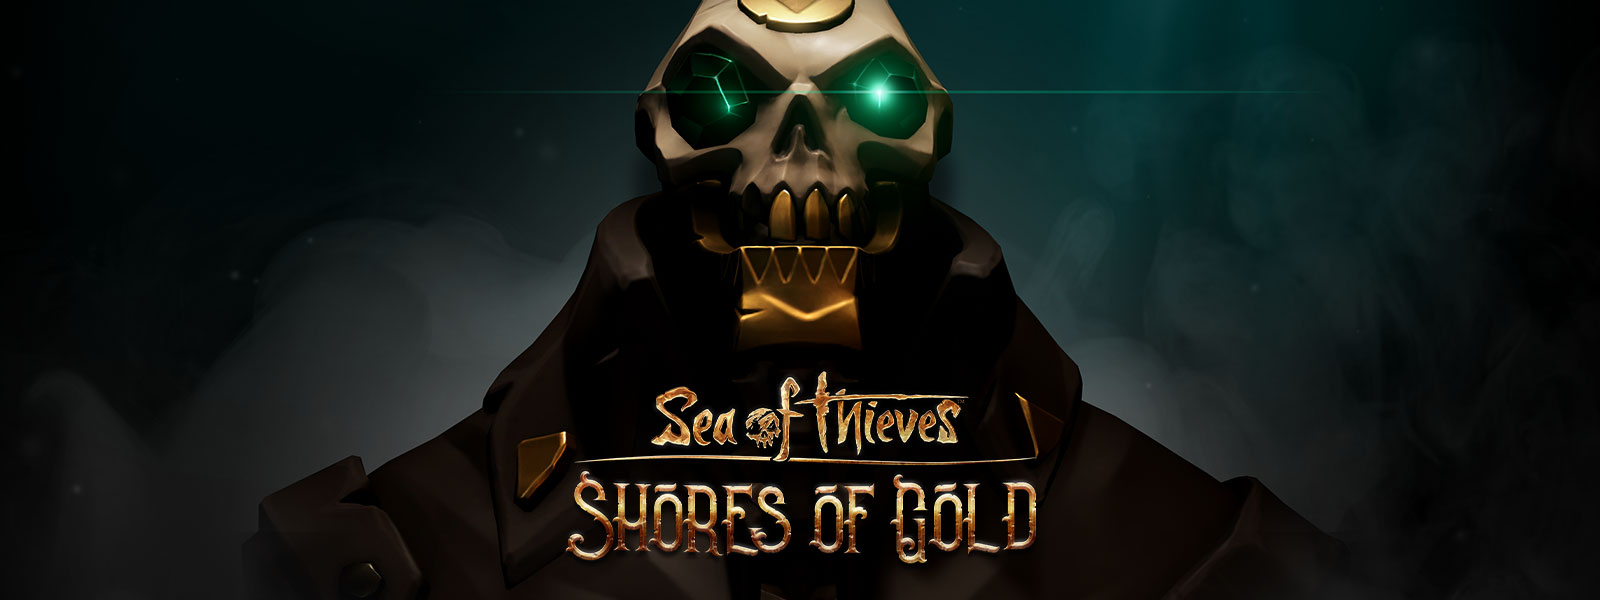 Sea of Thieves Shores of Gold logo on a skeleton pirate with gold teeth and emerald eyes